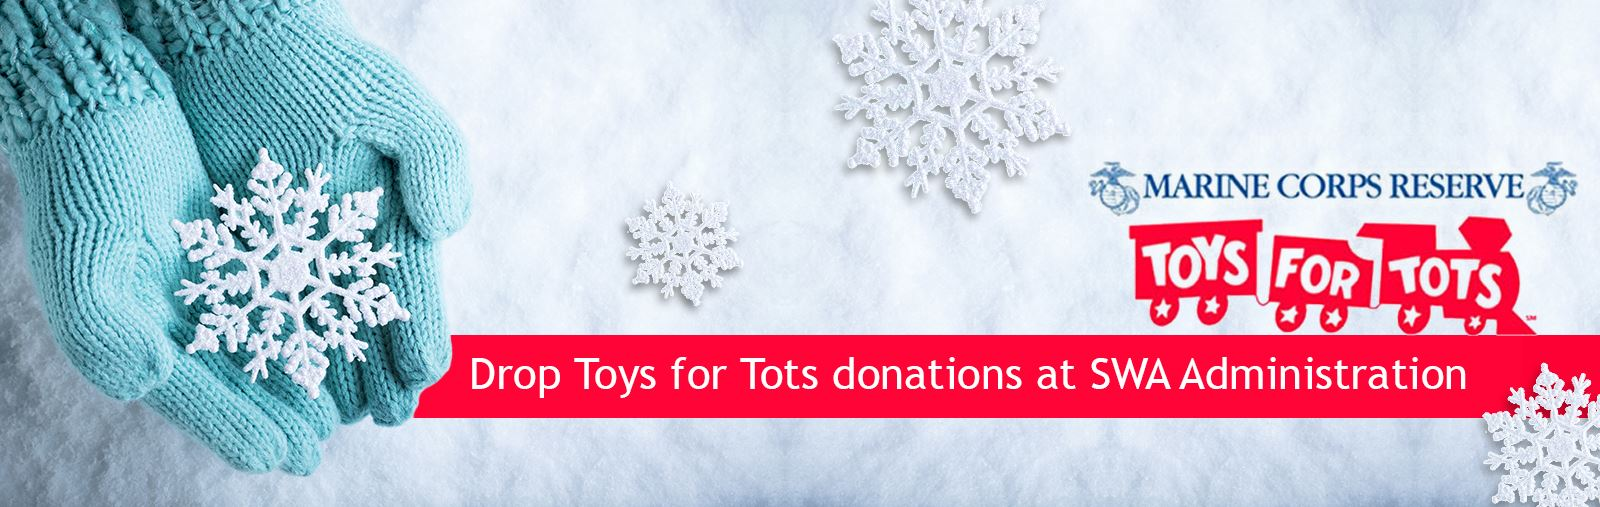 2019 Toys for Tots graphic with link to news release